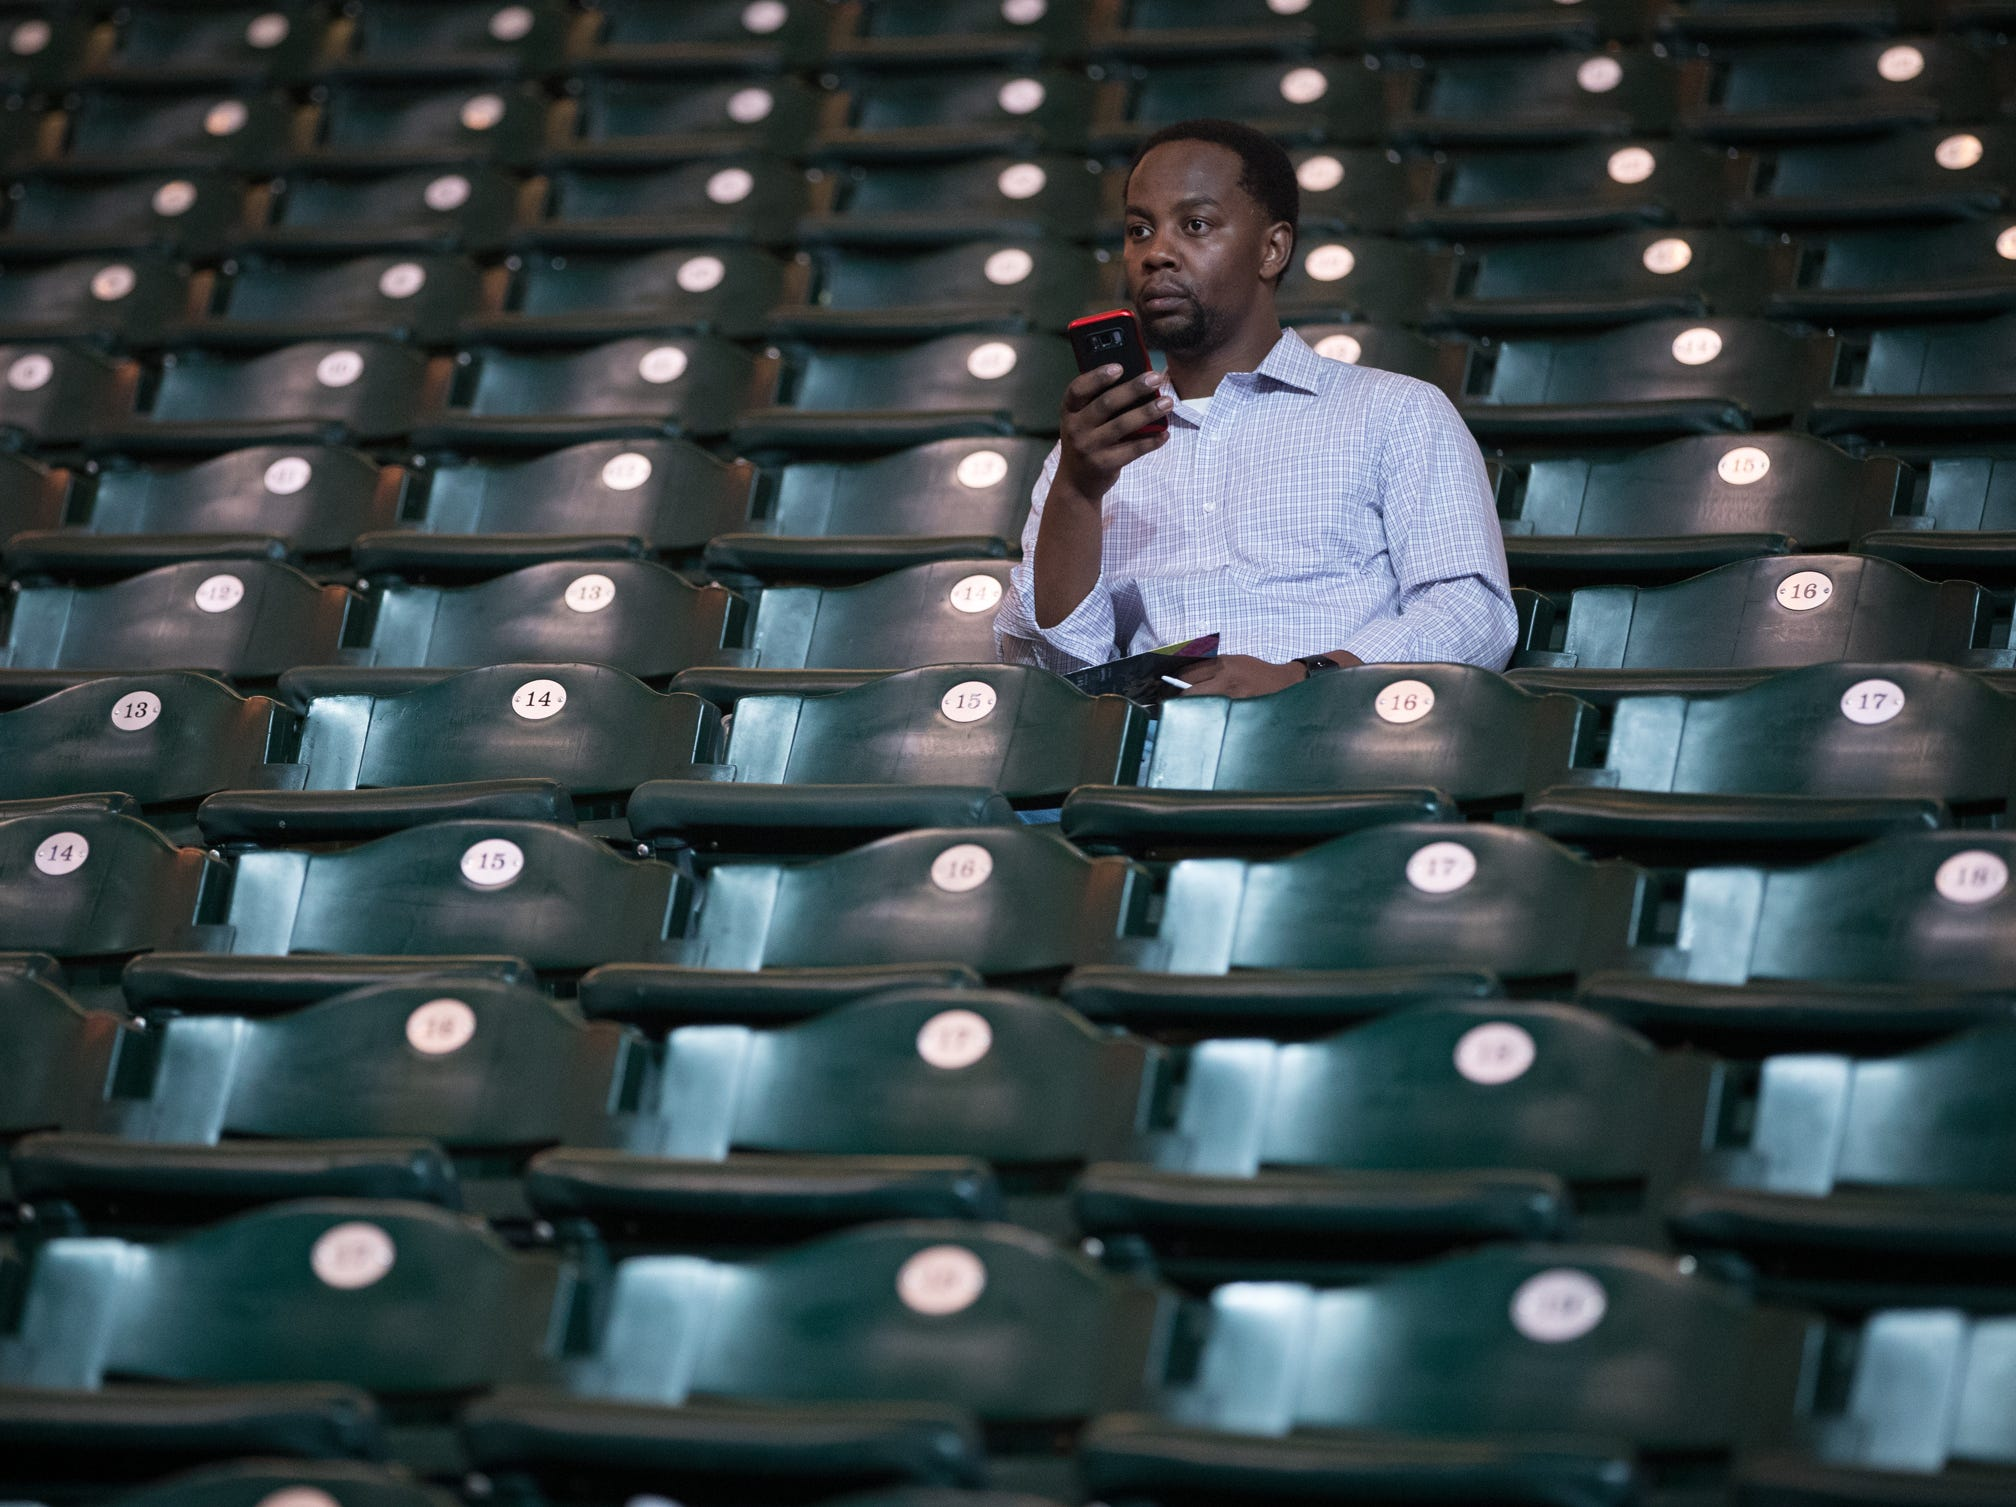 Martin Kirirah, Indianapolis, sits in the stands about an hour before the Joel Osteen event at Bankers Life Fieldhouse, Indianapolis, Friday, Aug. 10, 2018. The event, dubbed Night of Hope with Joel and Victoria, drew about 8,000 people to the arena for the event with the Houston-based televangelist.